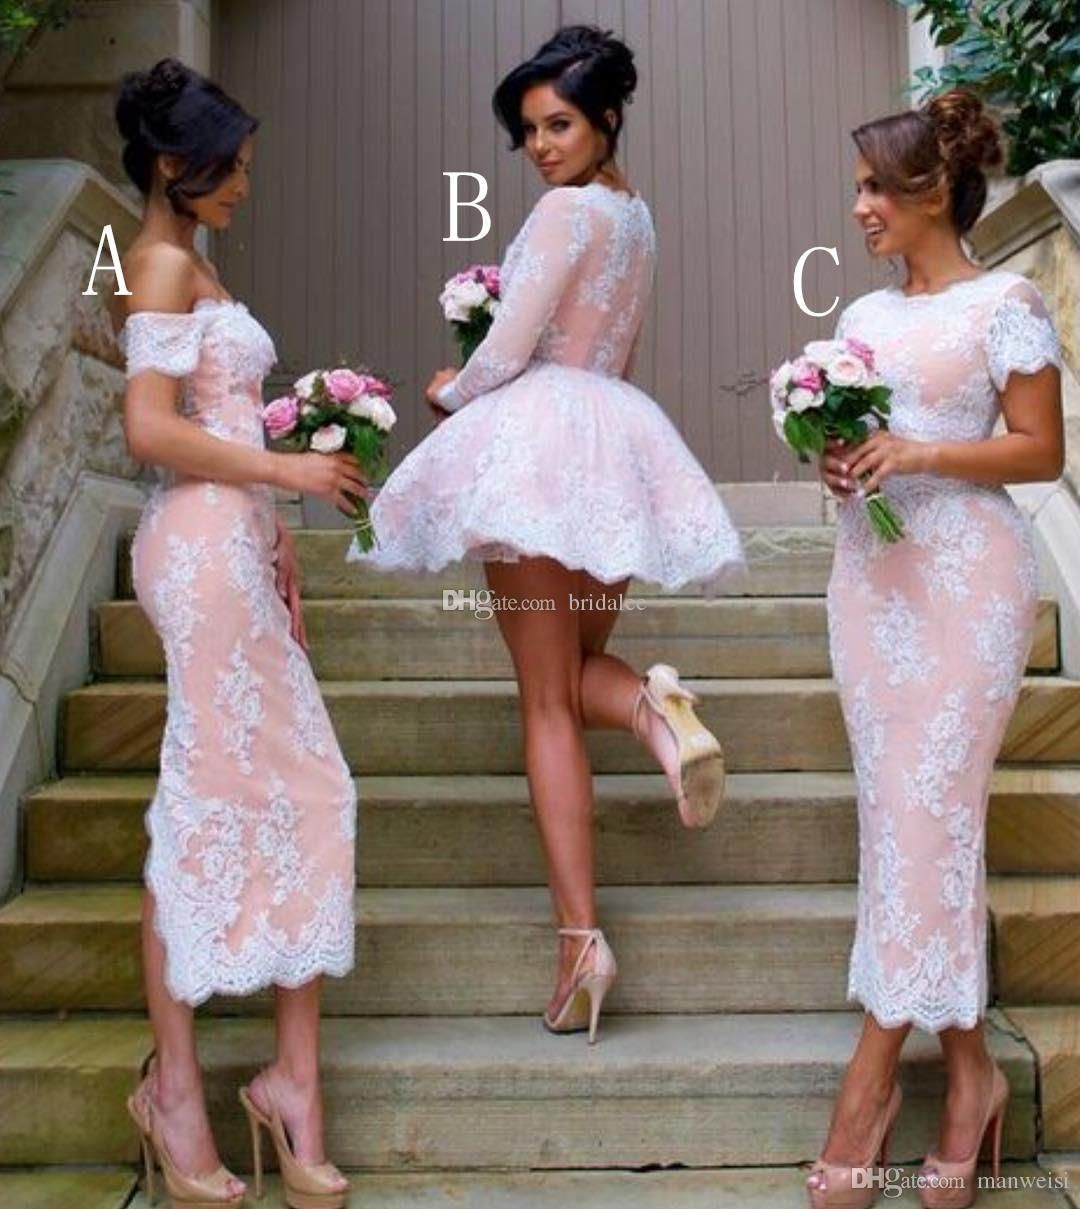 Mulit Style Long Sleeve Lace Bridesmaid Dresses Cheap V Neck Wedding Party Gowns Plus Size Maid Of Honor Gown From Bridalee 83 47 Dhgate Com Long Sleeve Lace Bridesmaid Dresses Unique Bridesmaid [ 1209 x 1080 Pixel ]